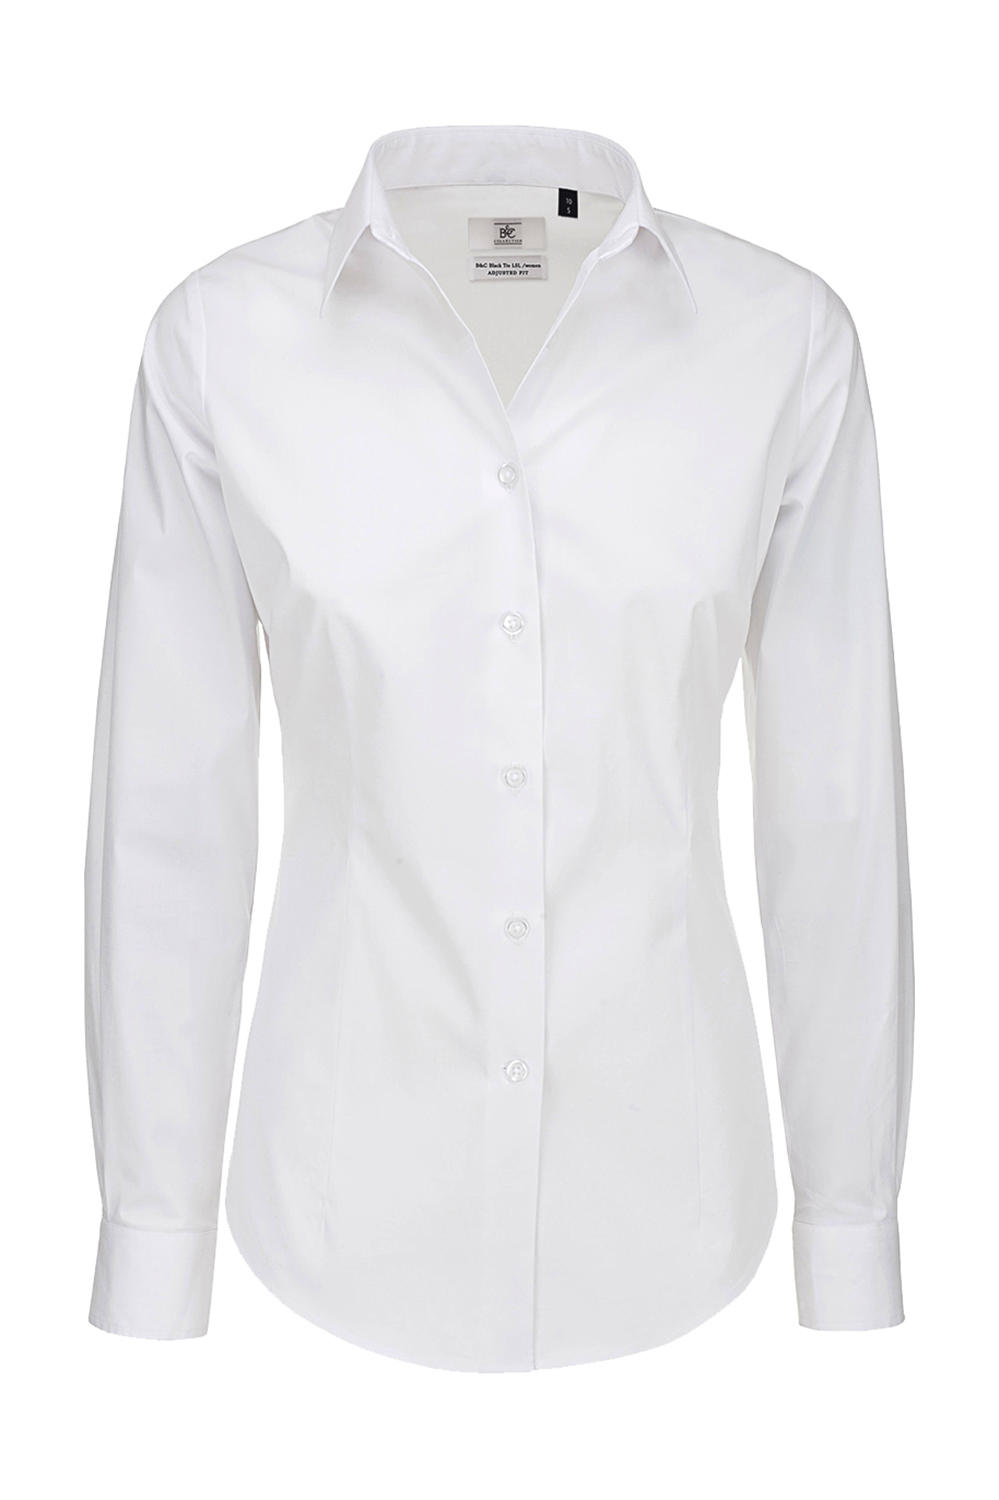 Black Tie LSL/women Poplin Shirt